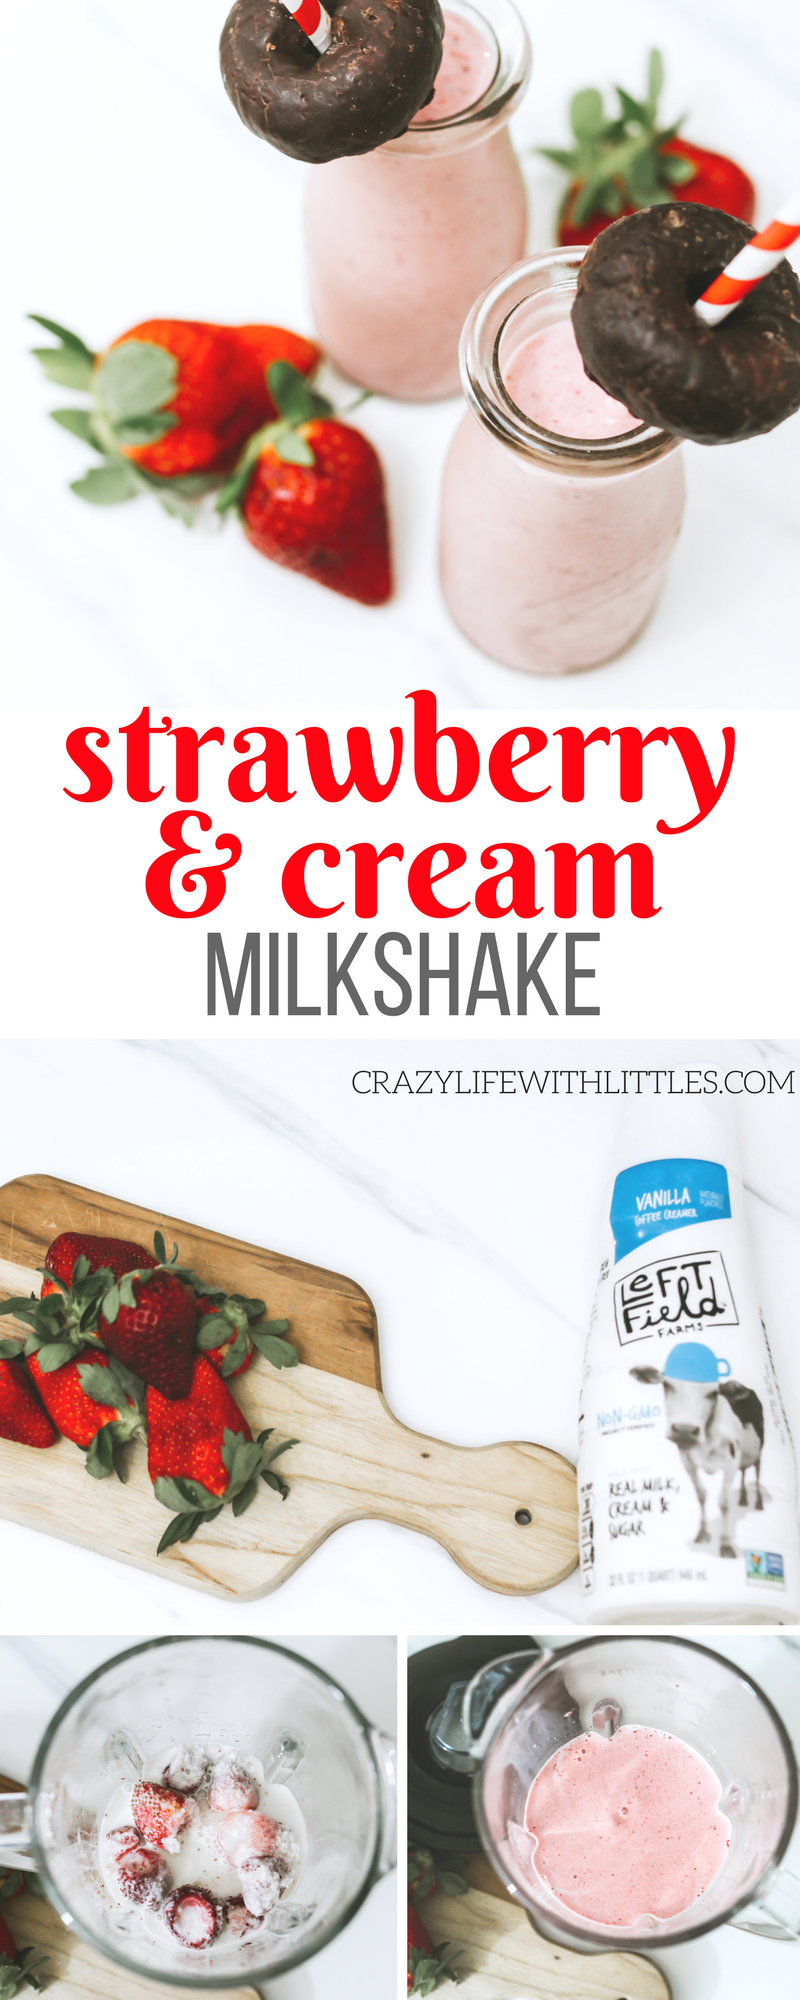 #AD #LeftFieldFarms Thick, creamy Strawberry and Cream Milkshake made with non-GMO vanilla coffee creamer instead of ice cream. Learn more srcset=